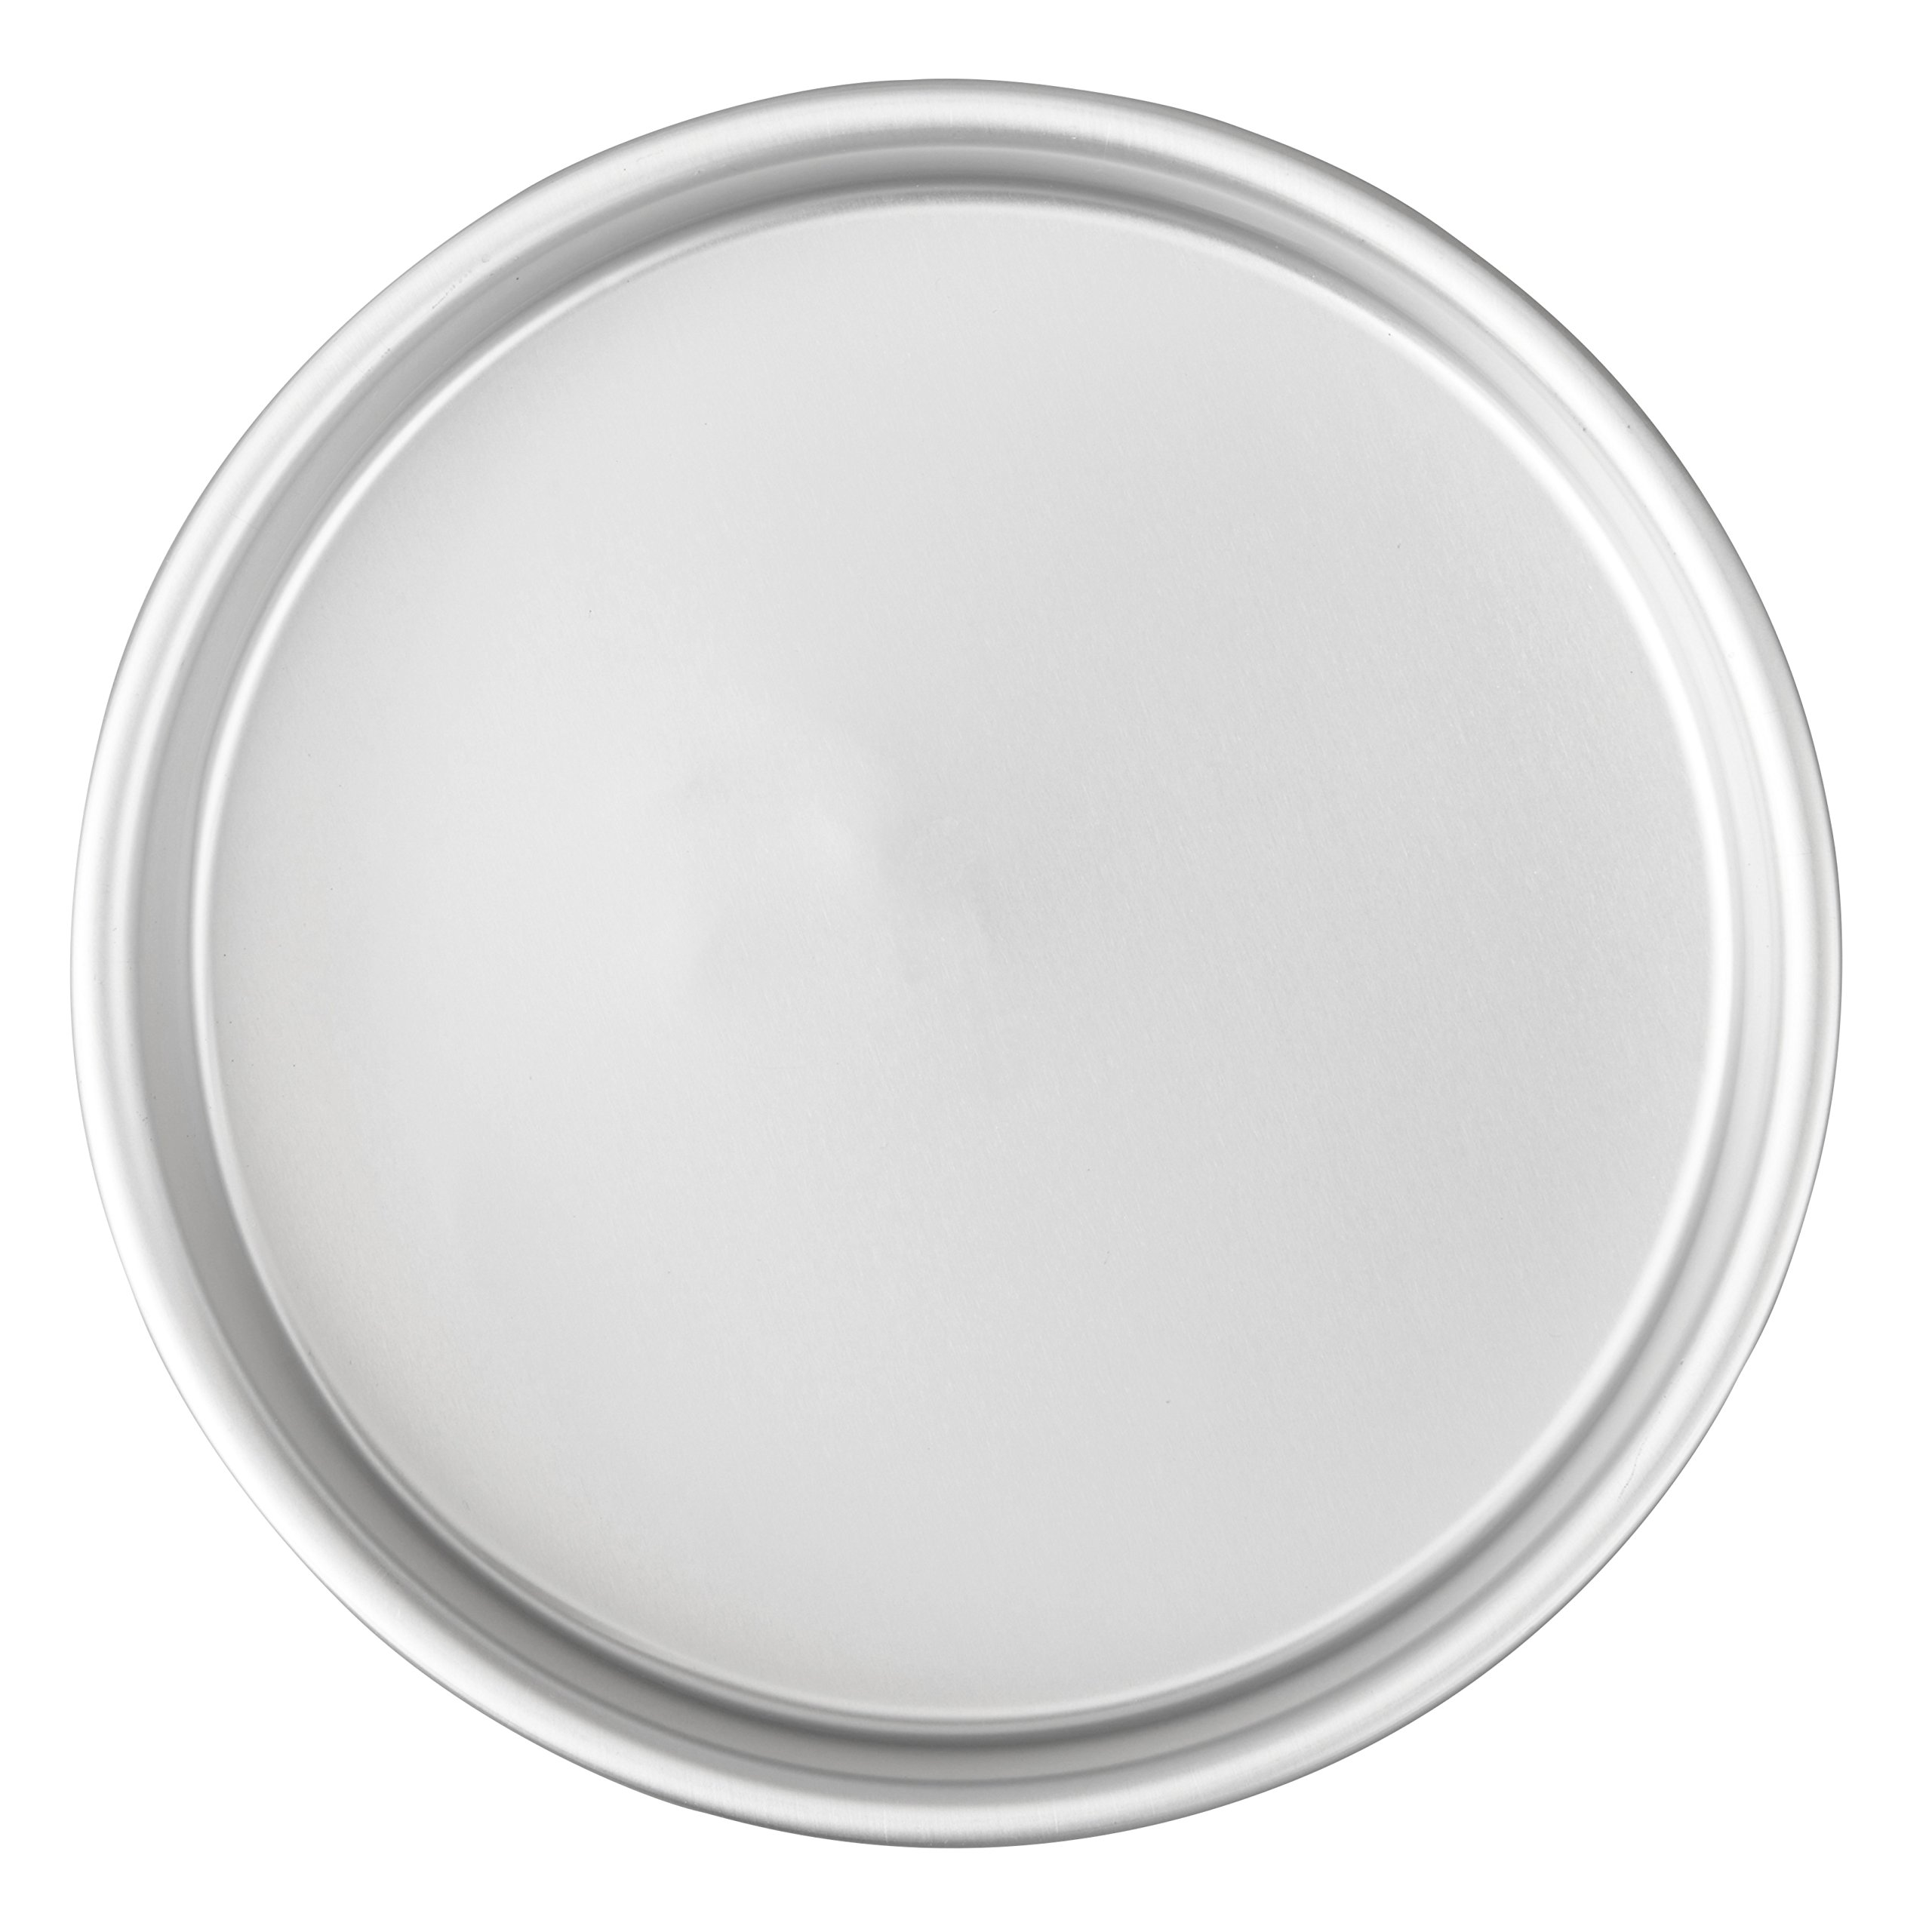 Wilton Round Cake Tin, Performance Pan, Aluminium, 20.3cm (8in) product image